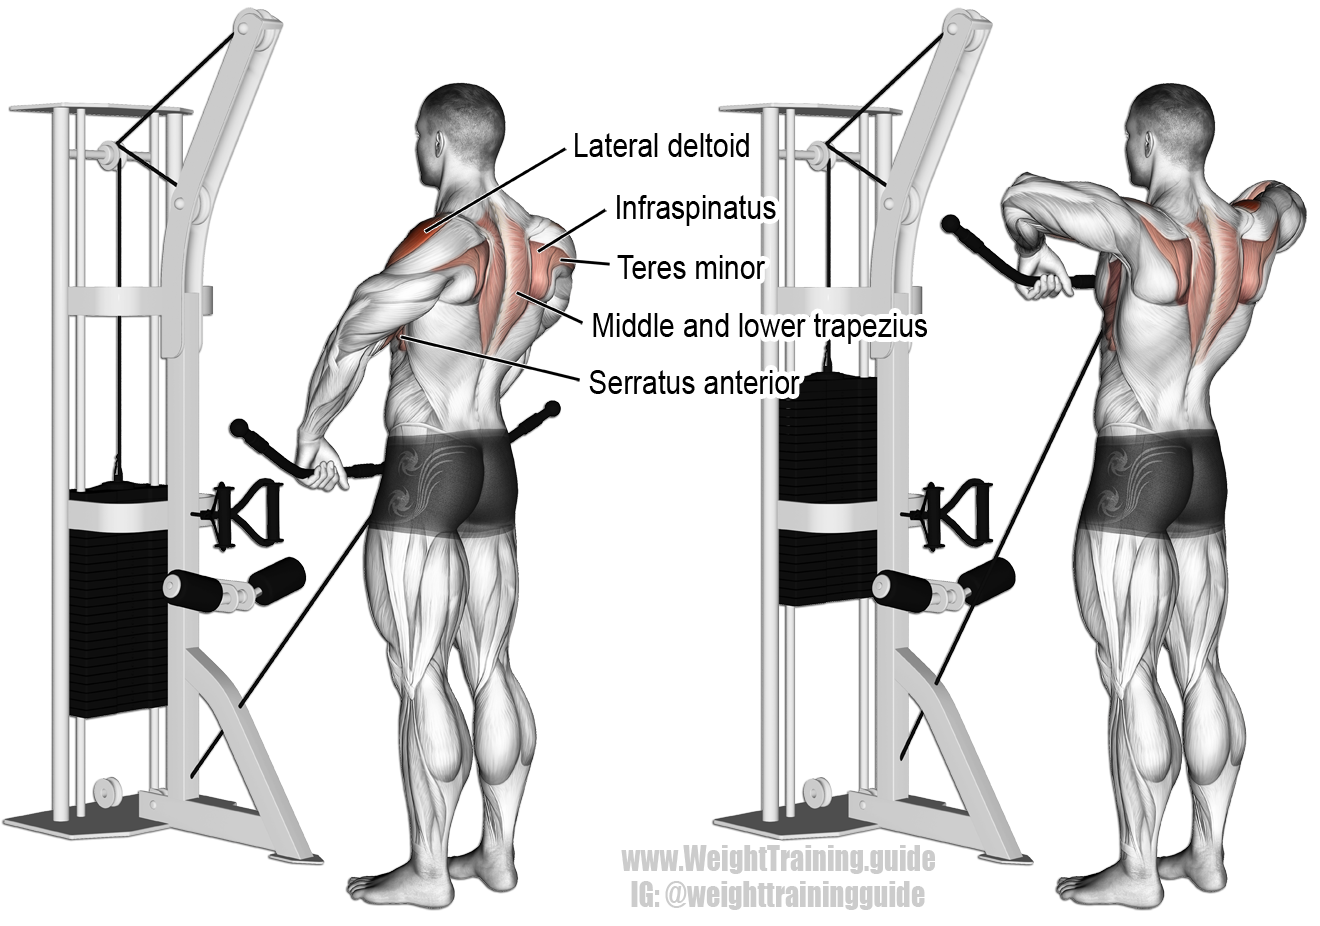 Cable wide grip upright row instructions and video ...